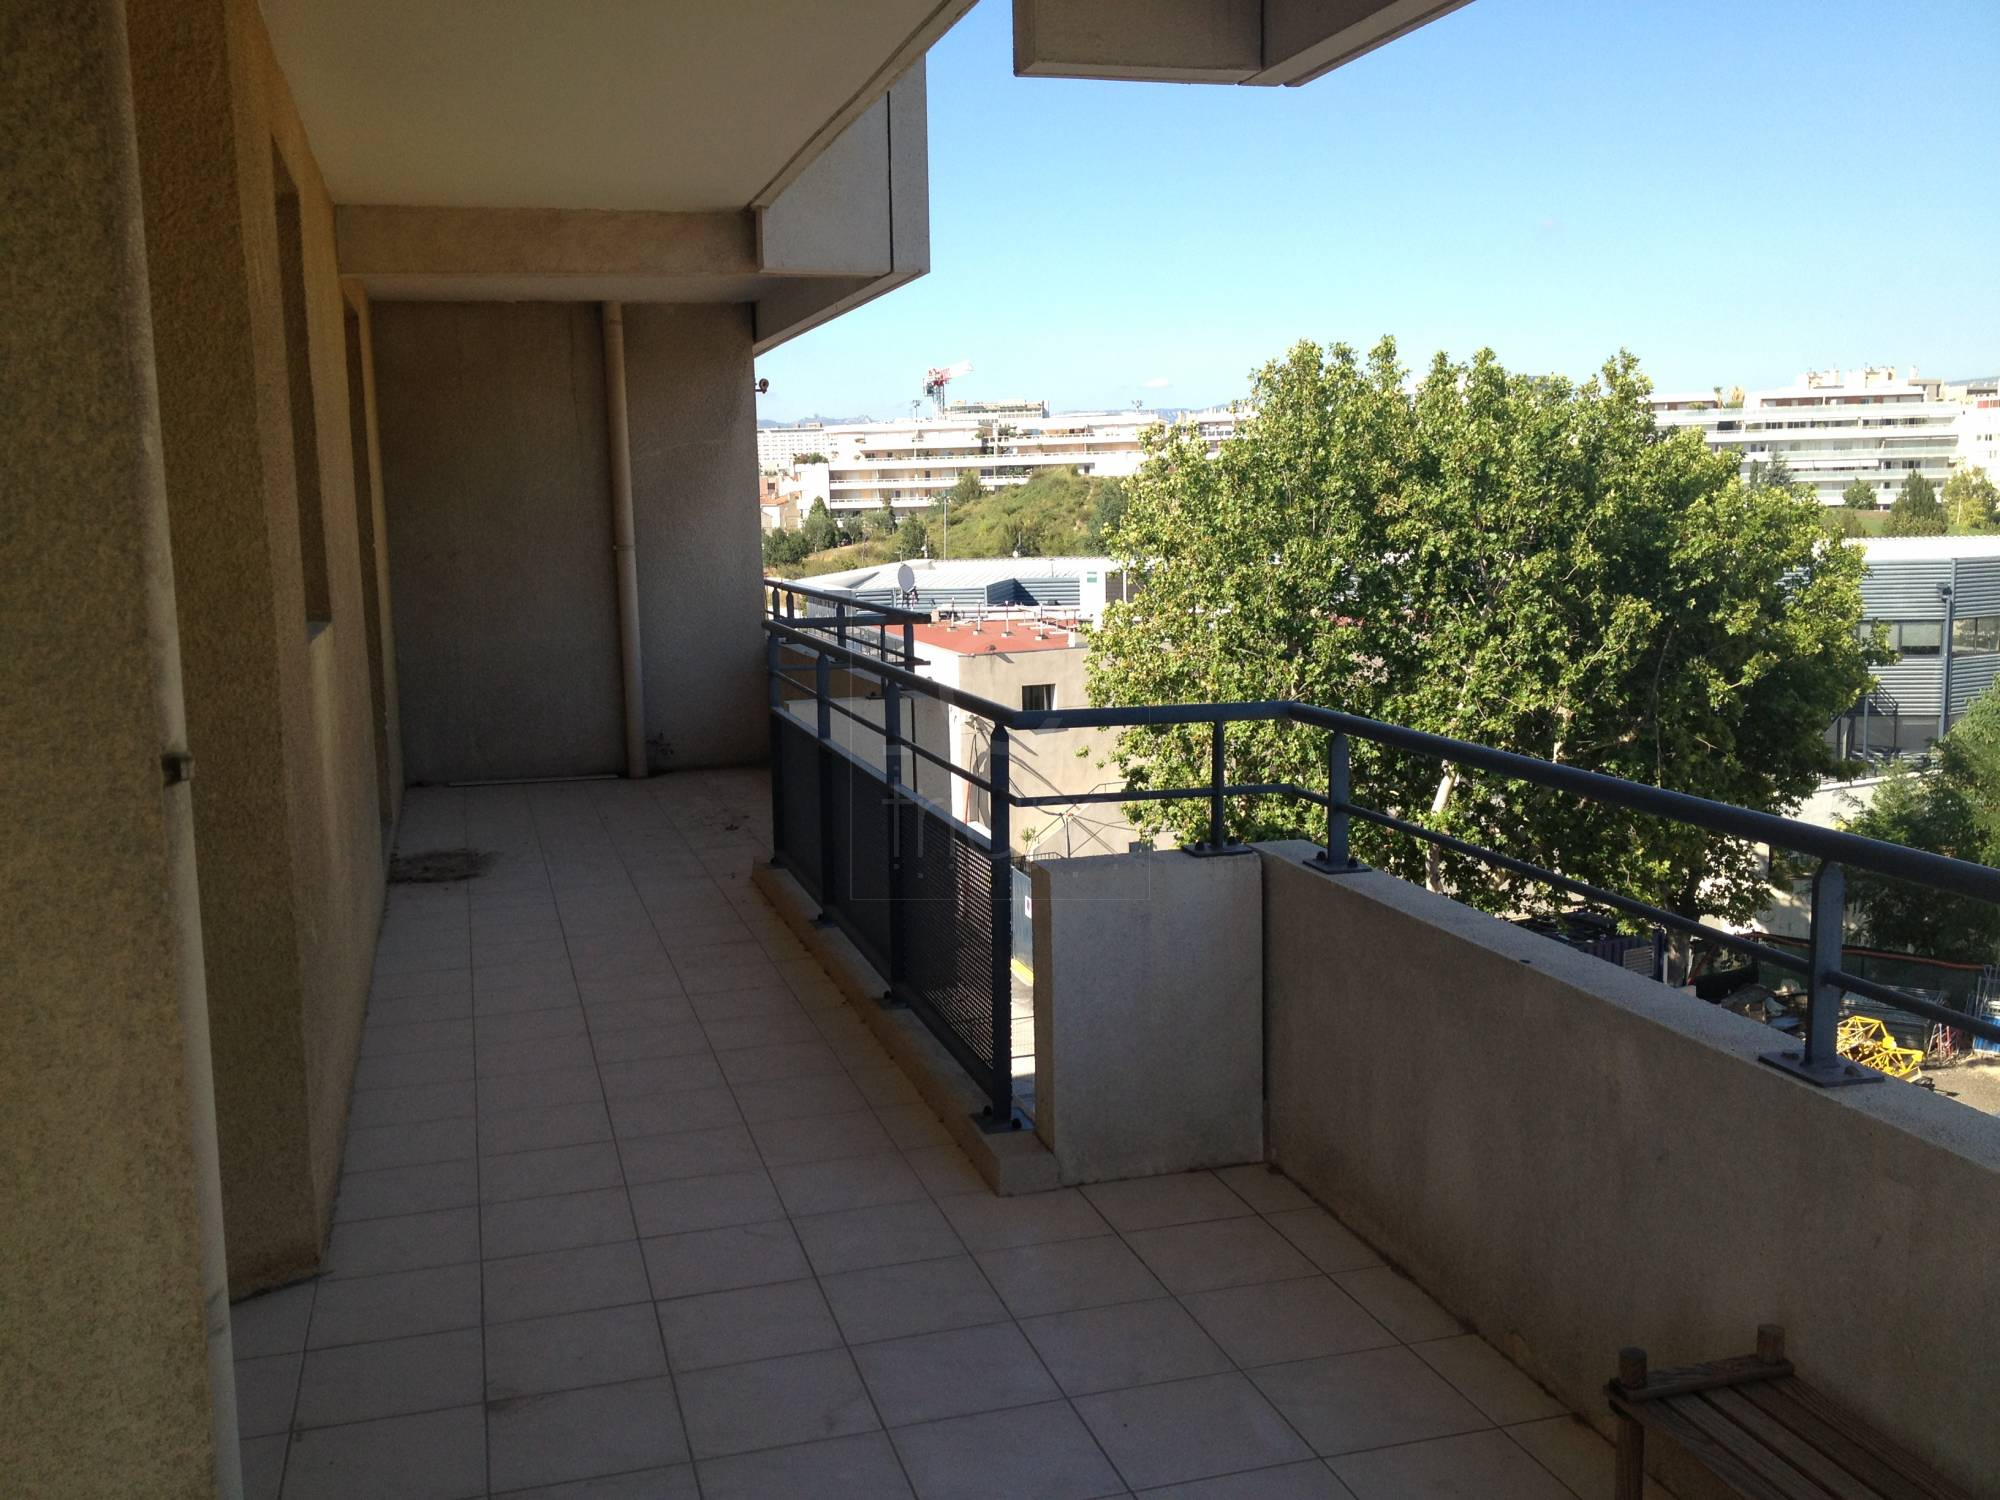 Location appartement t2 f2 marseille 8eme prado rouet for T2 marseille terrasse